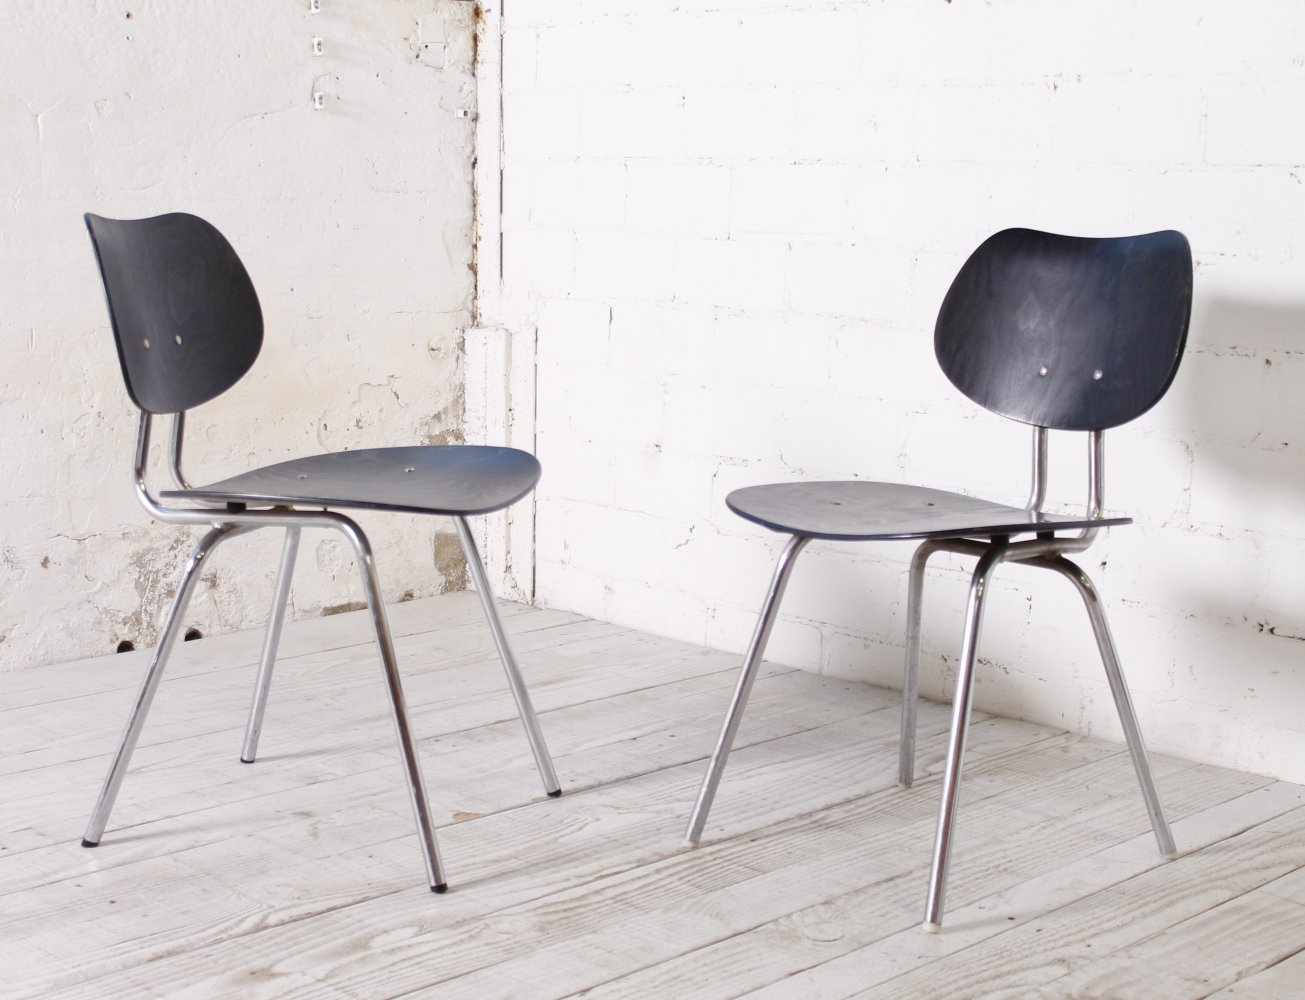 Rare TF 05 Chairs by Kurt Felkel for Thonet, 1950s